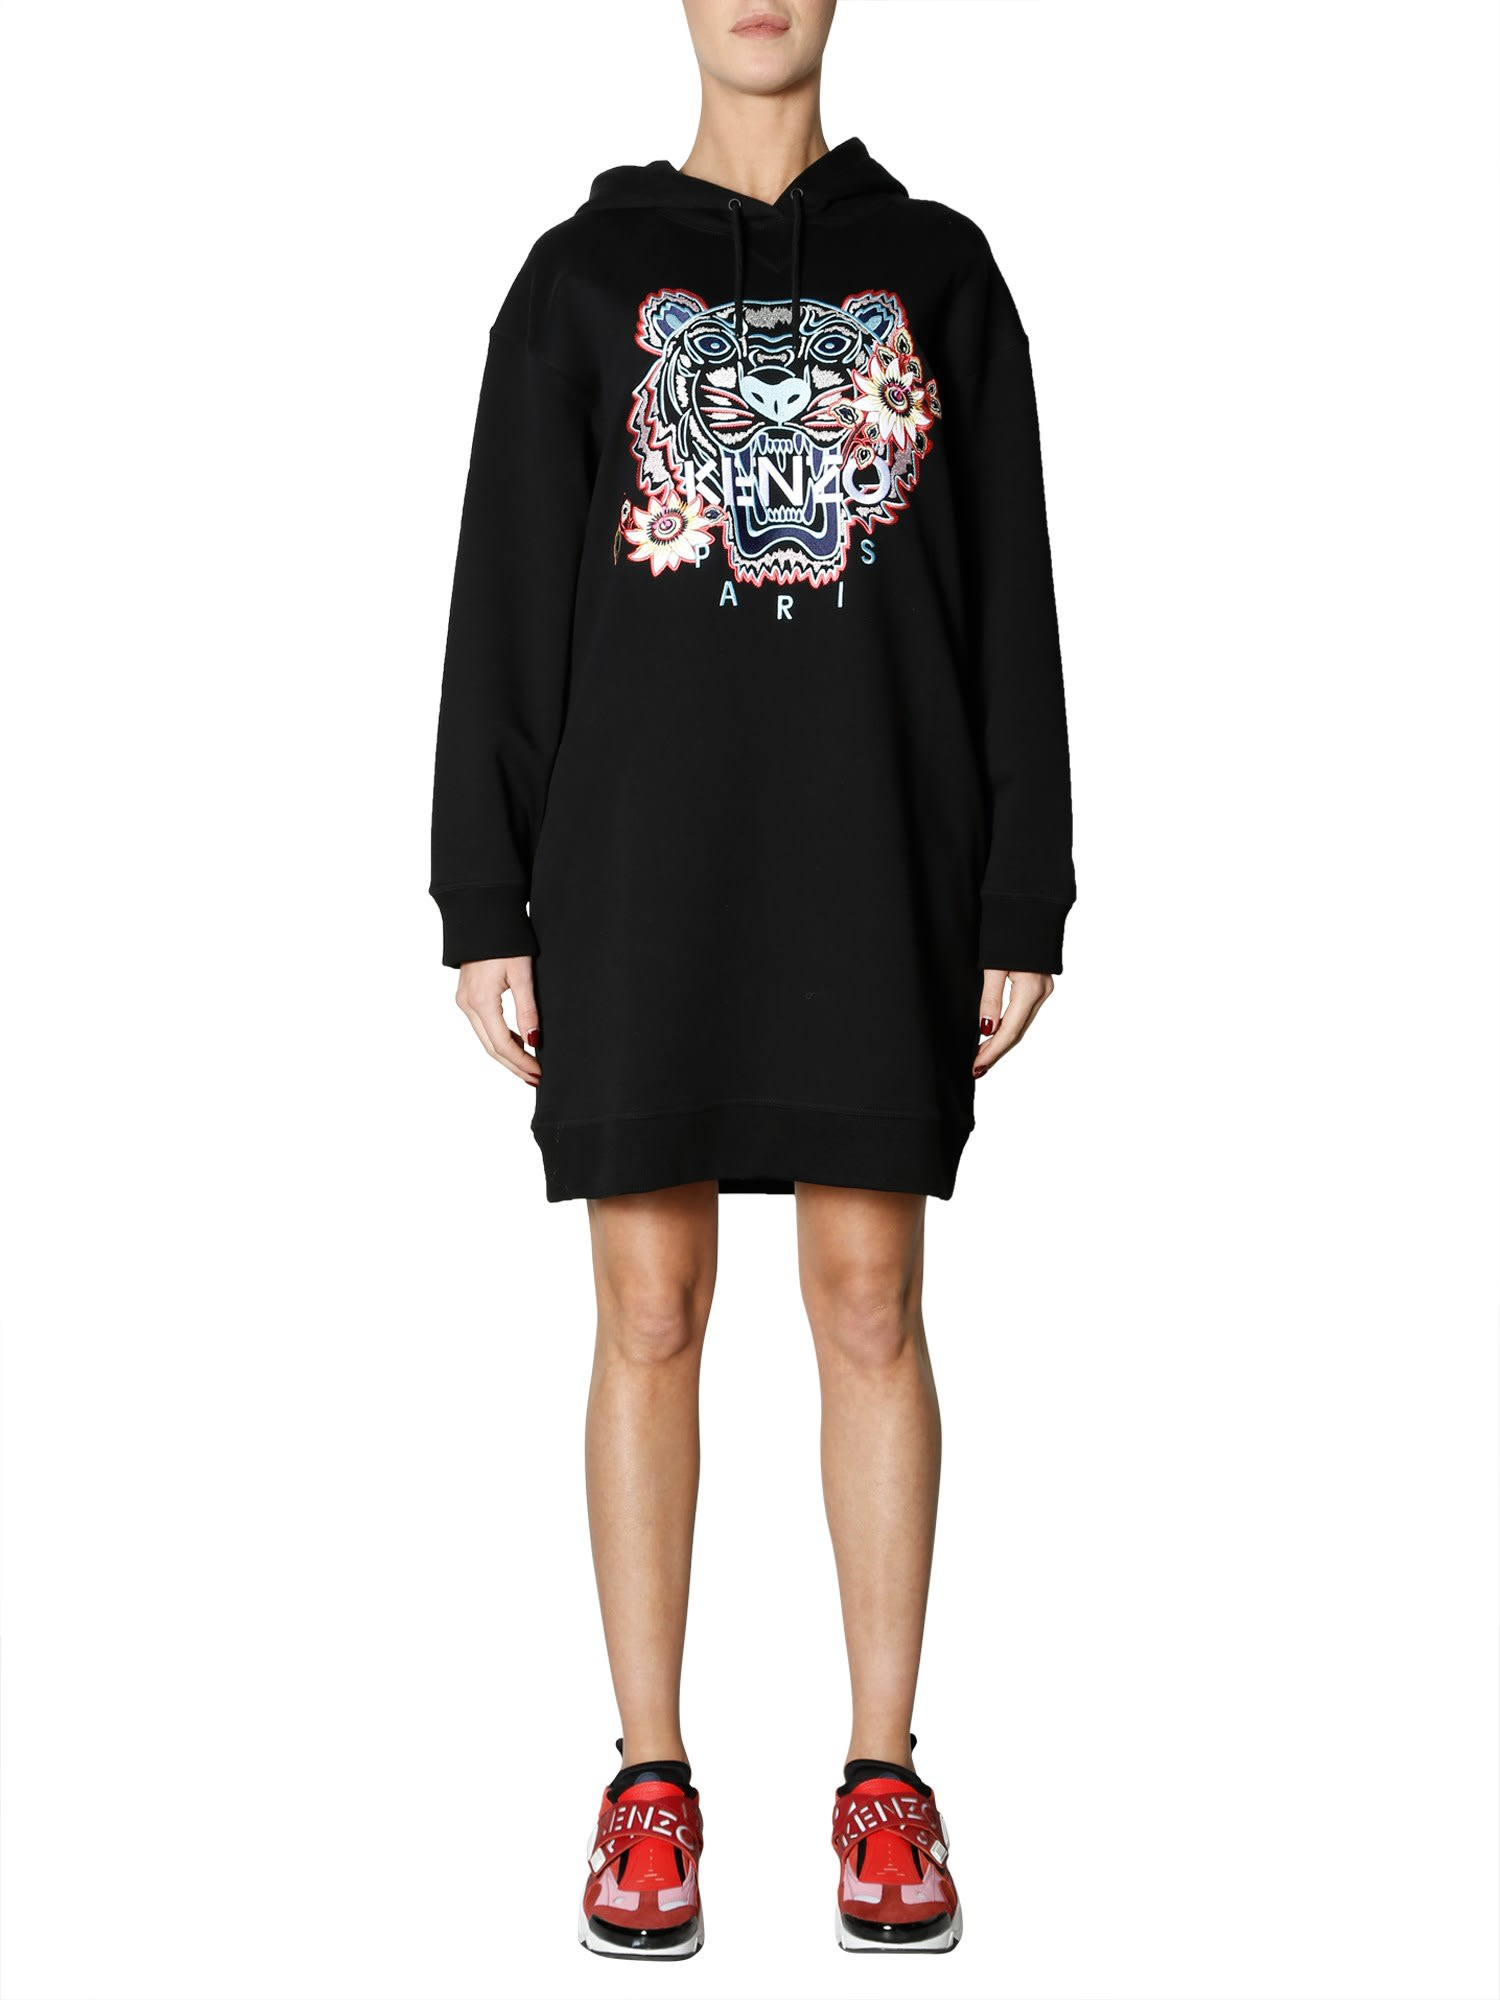 Kenzo Hooded Sweatshirt Dress